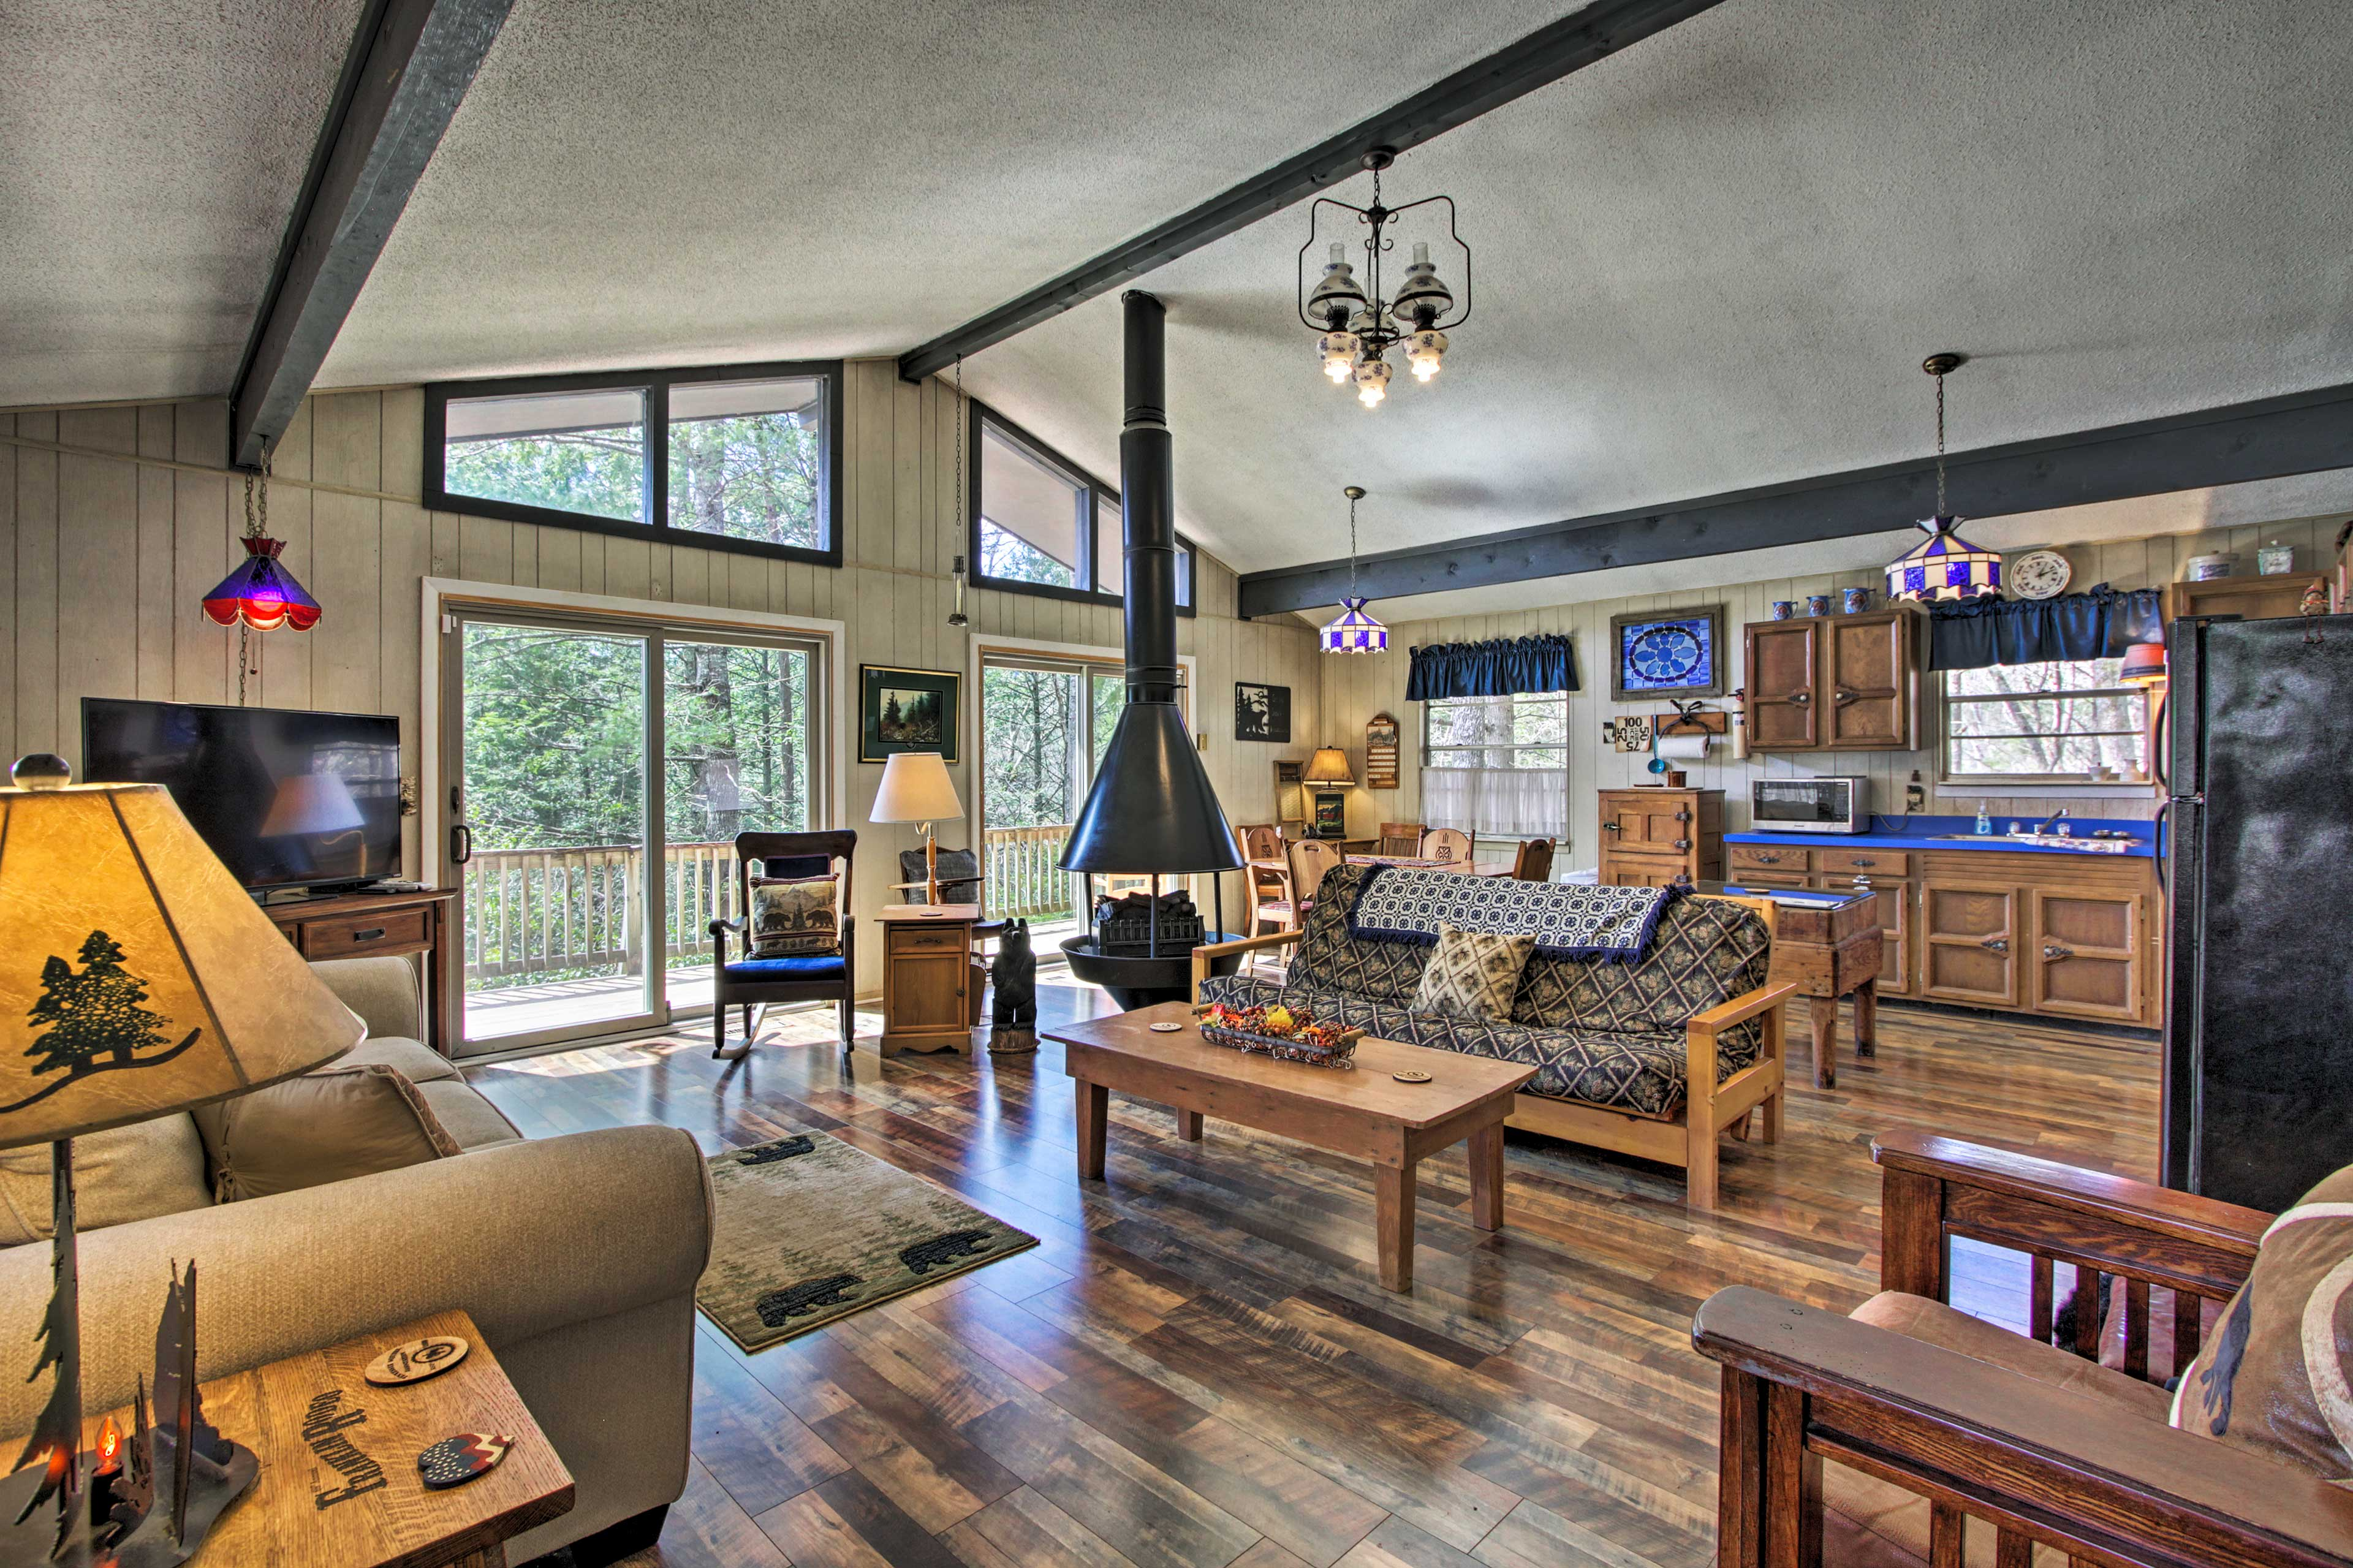 This Gatlinburg getaway has everything you'll need for a relaxing retreat.